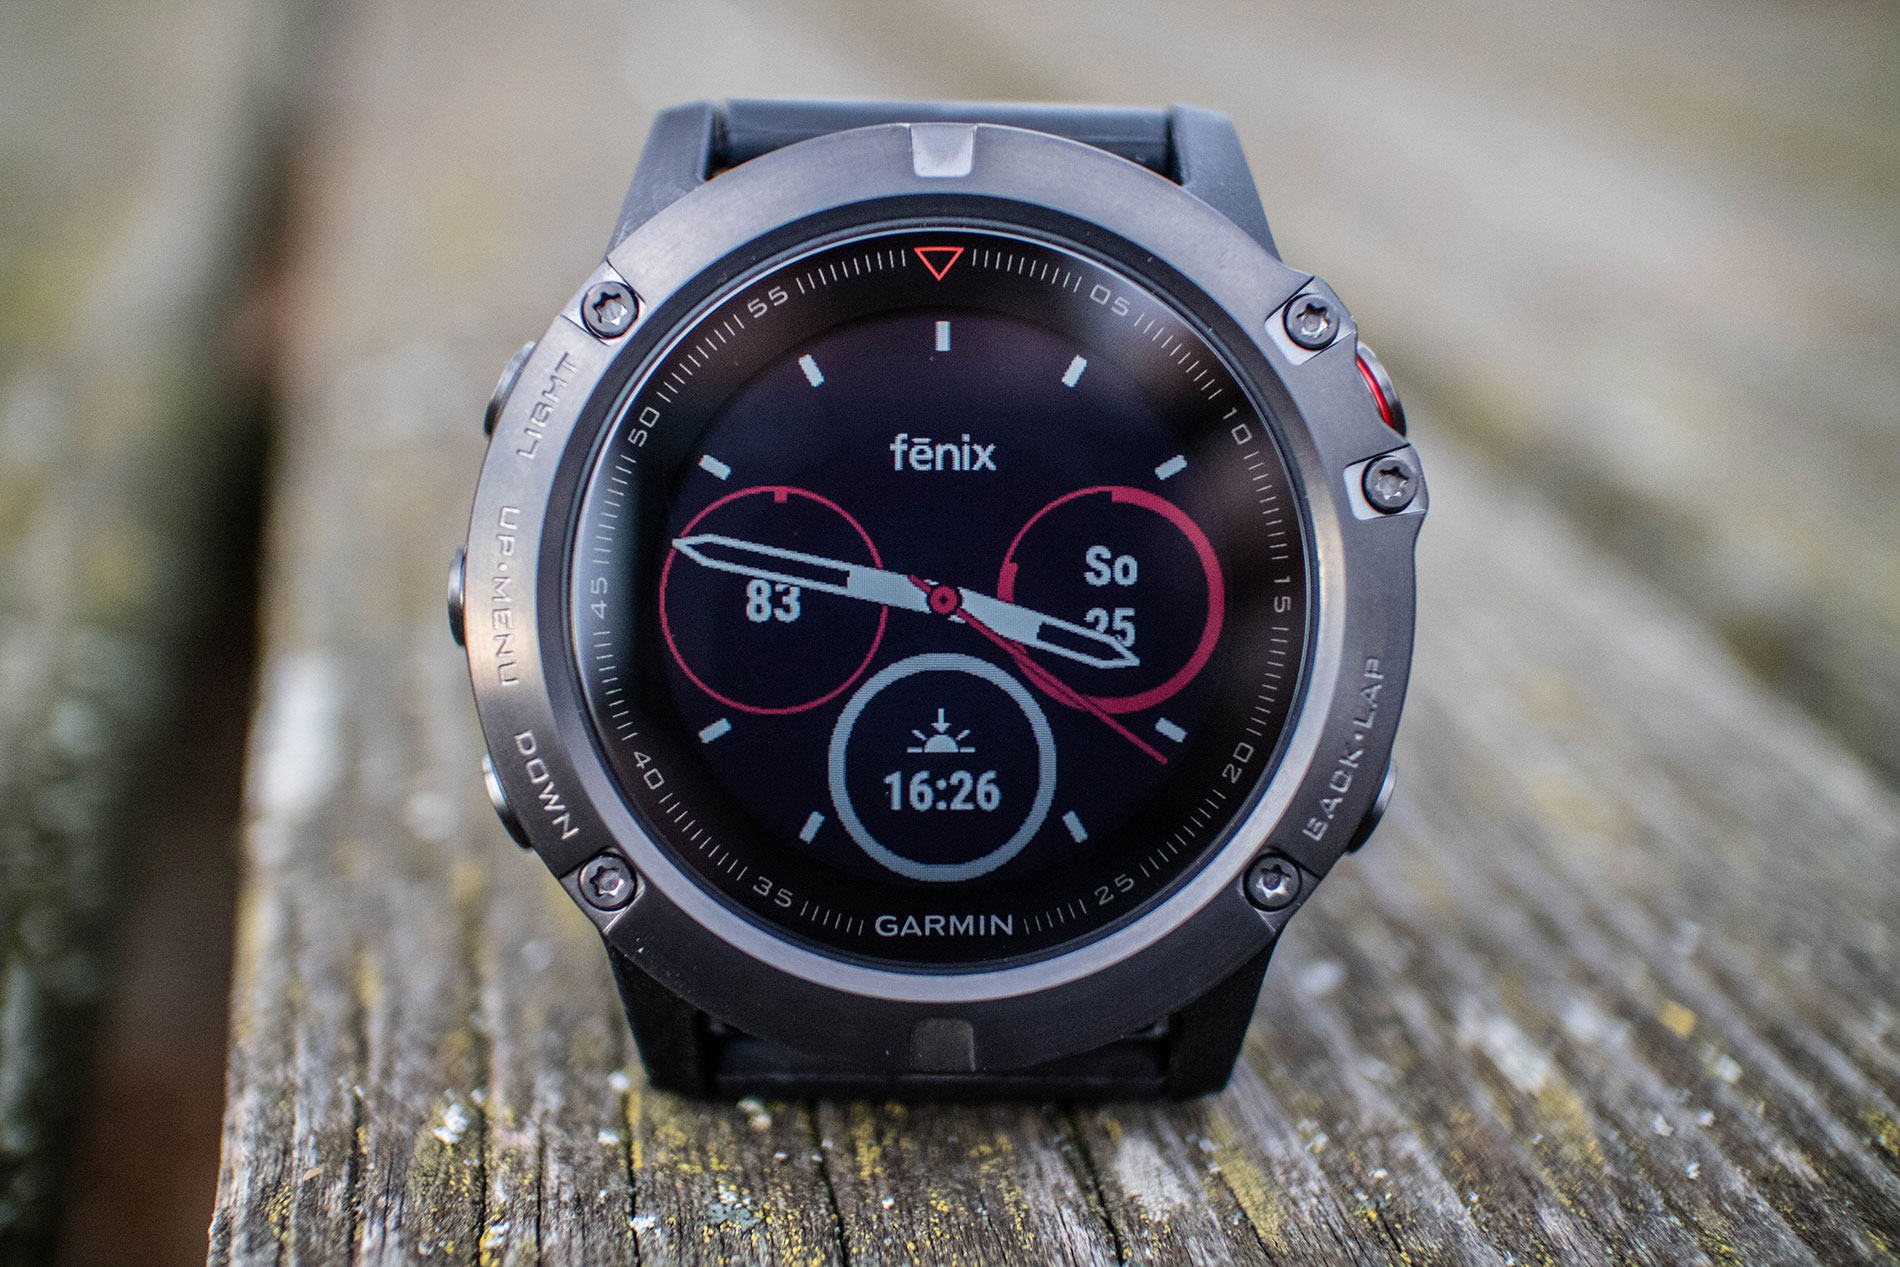 garmin fenix 5 im vergleich. Black Bedroom Furniture Sets. Home Design Ideas